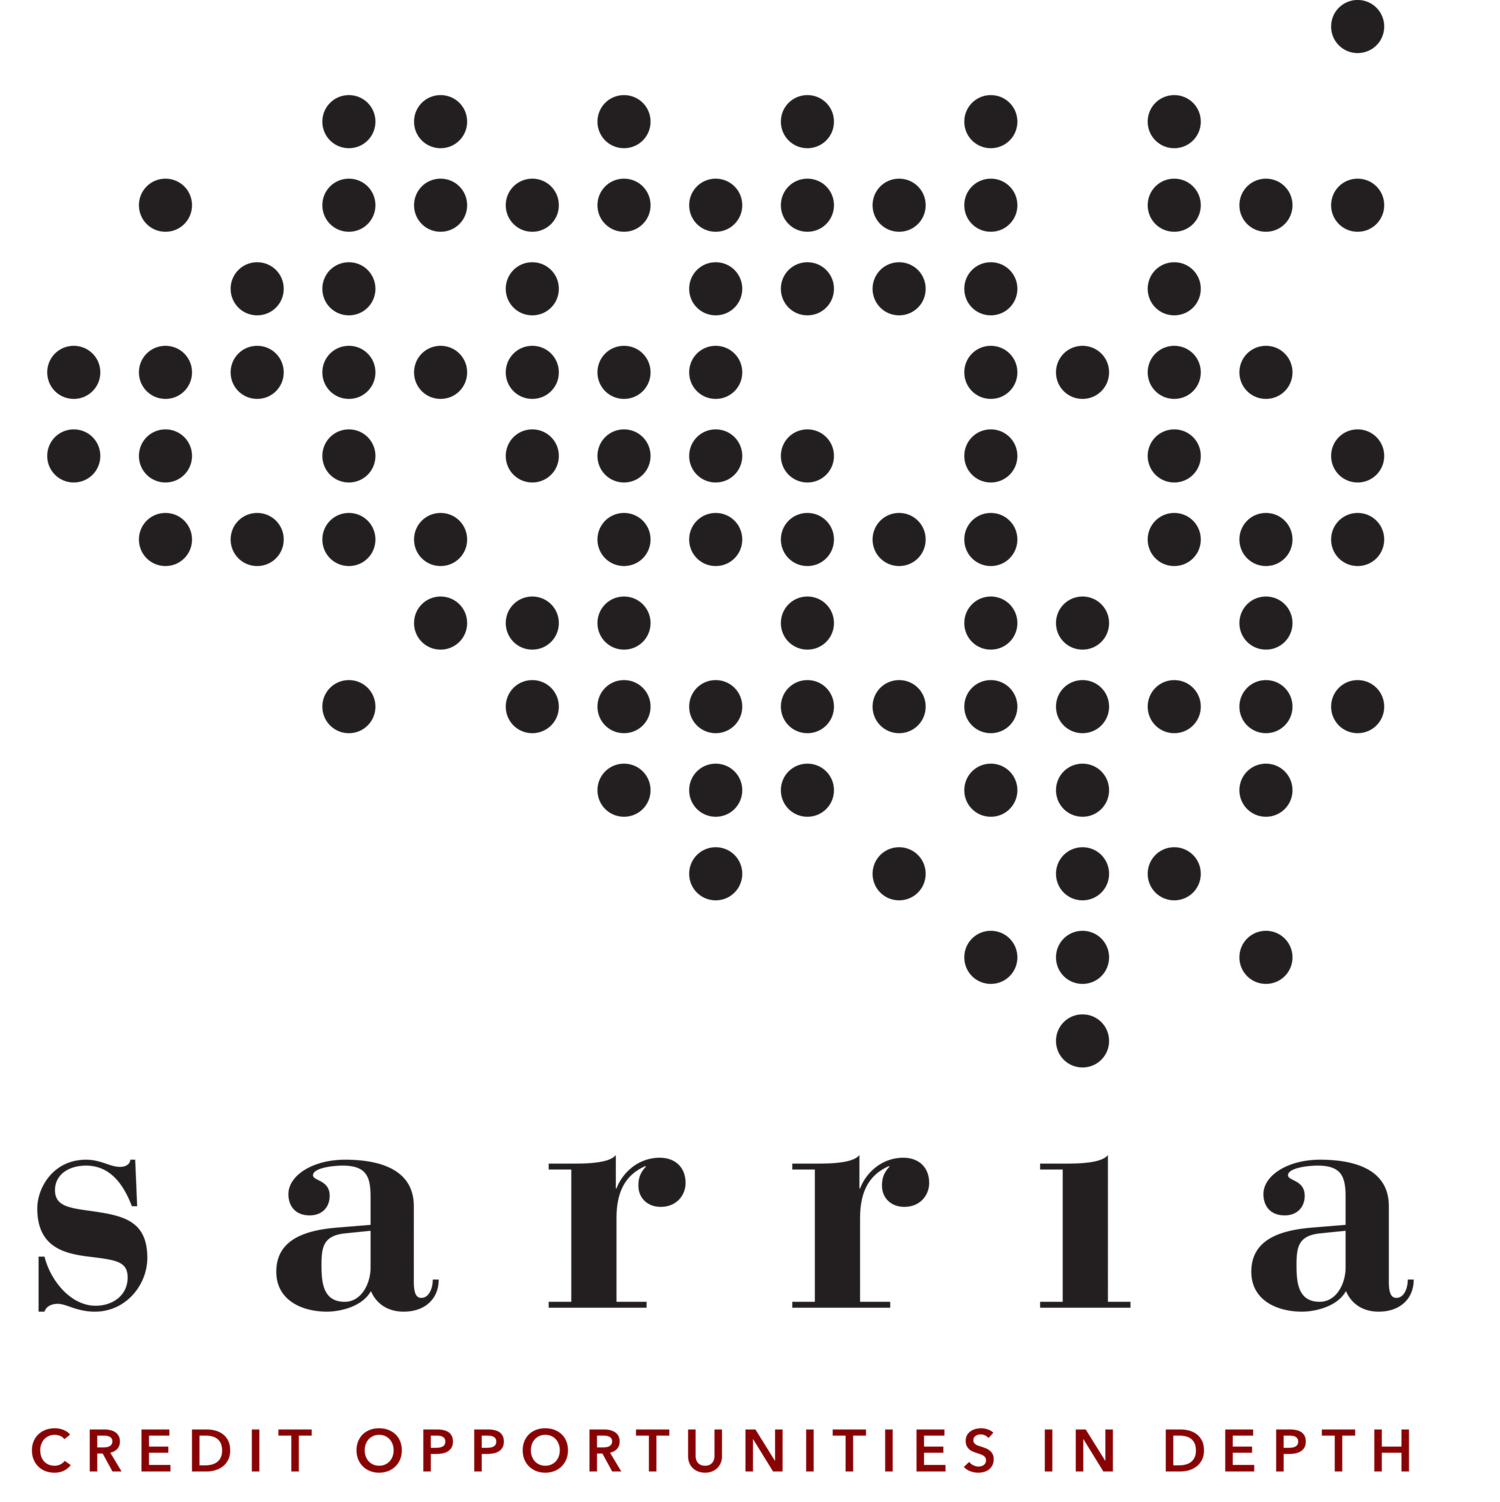 SARRIA- Credit Opportunities in Depth